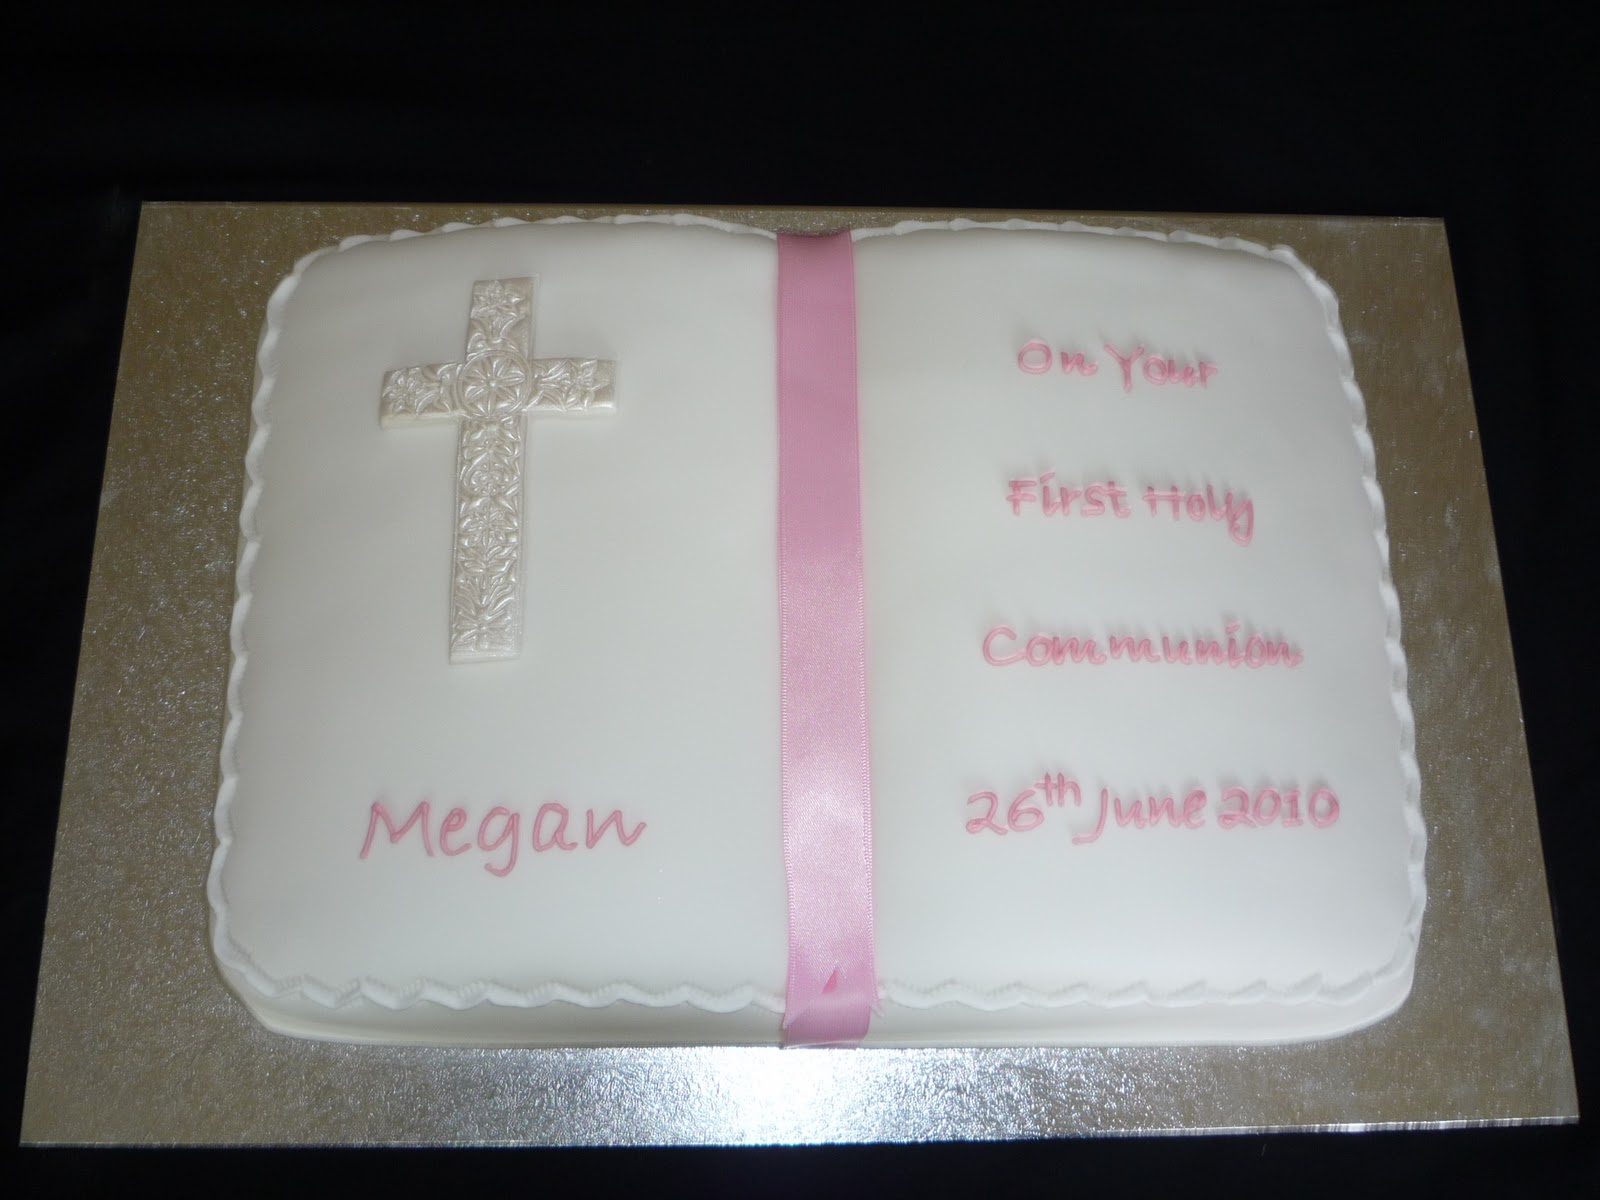 Allan wedding engagement christening and first holy communion cakes